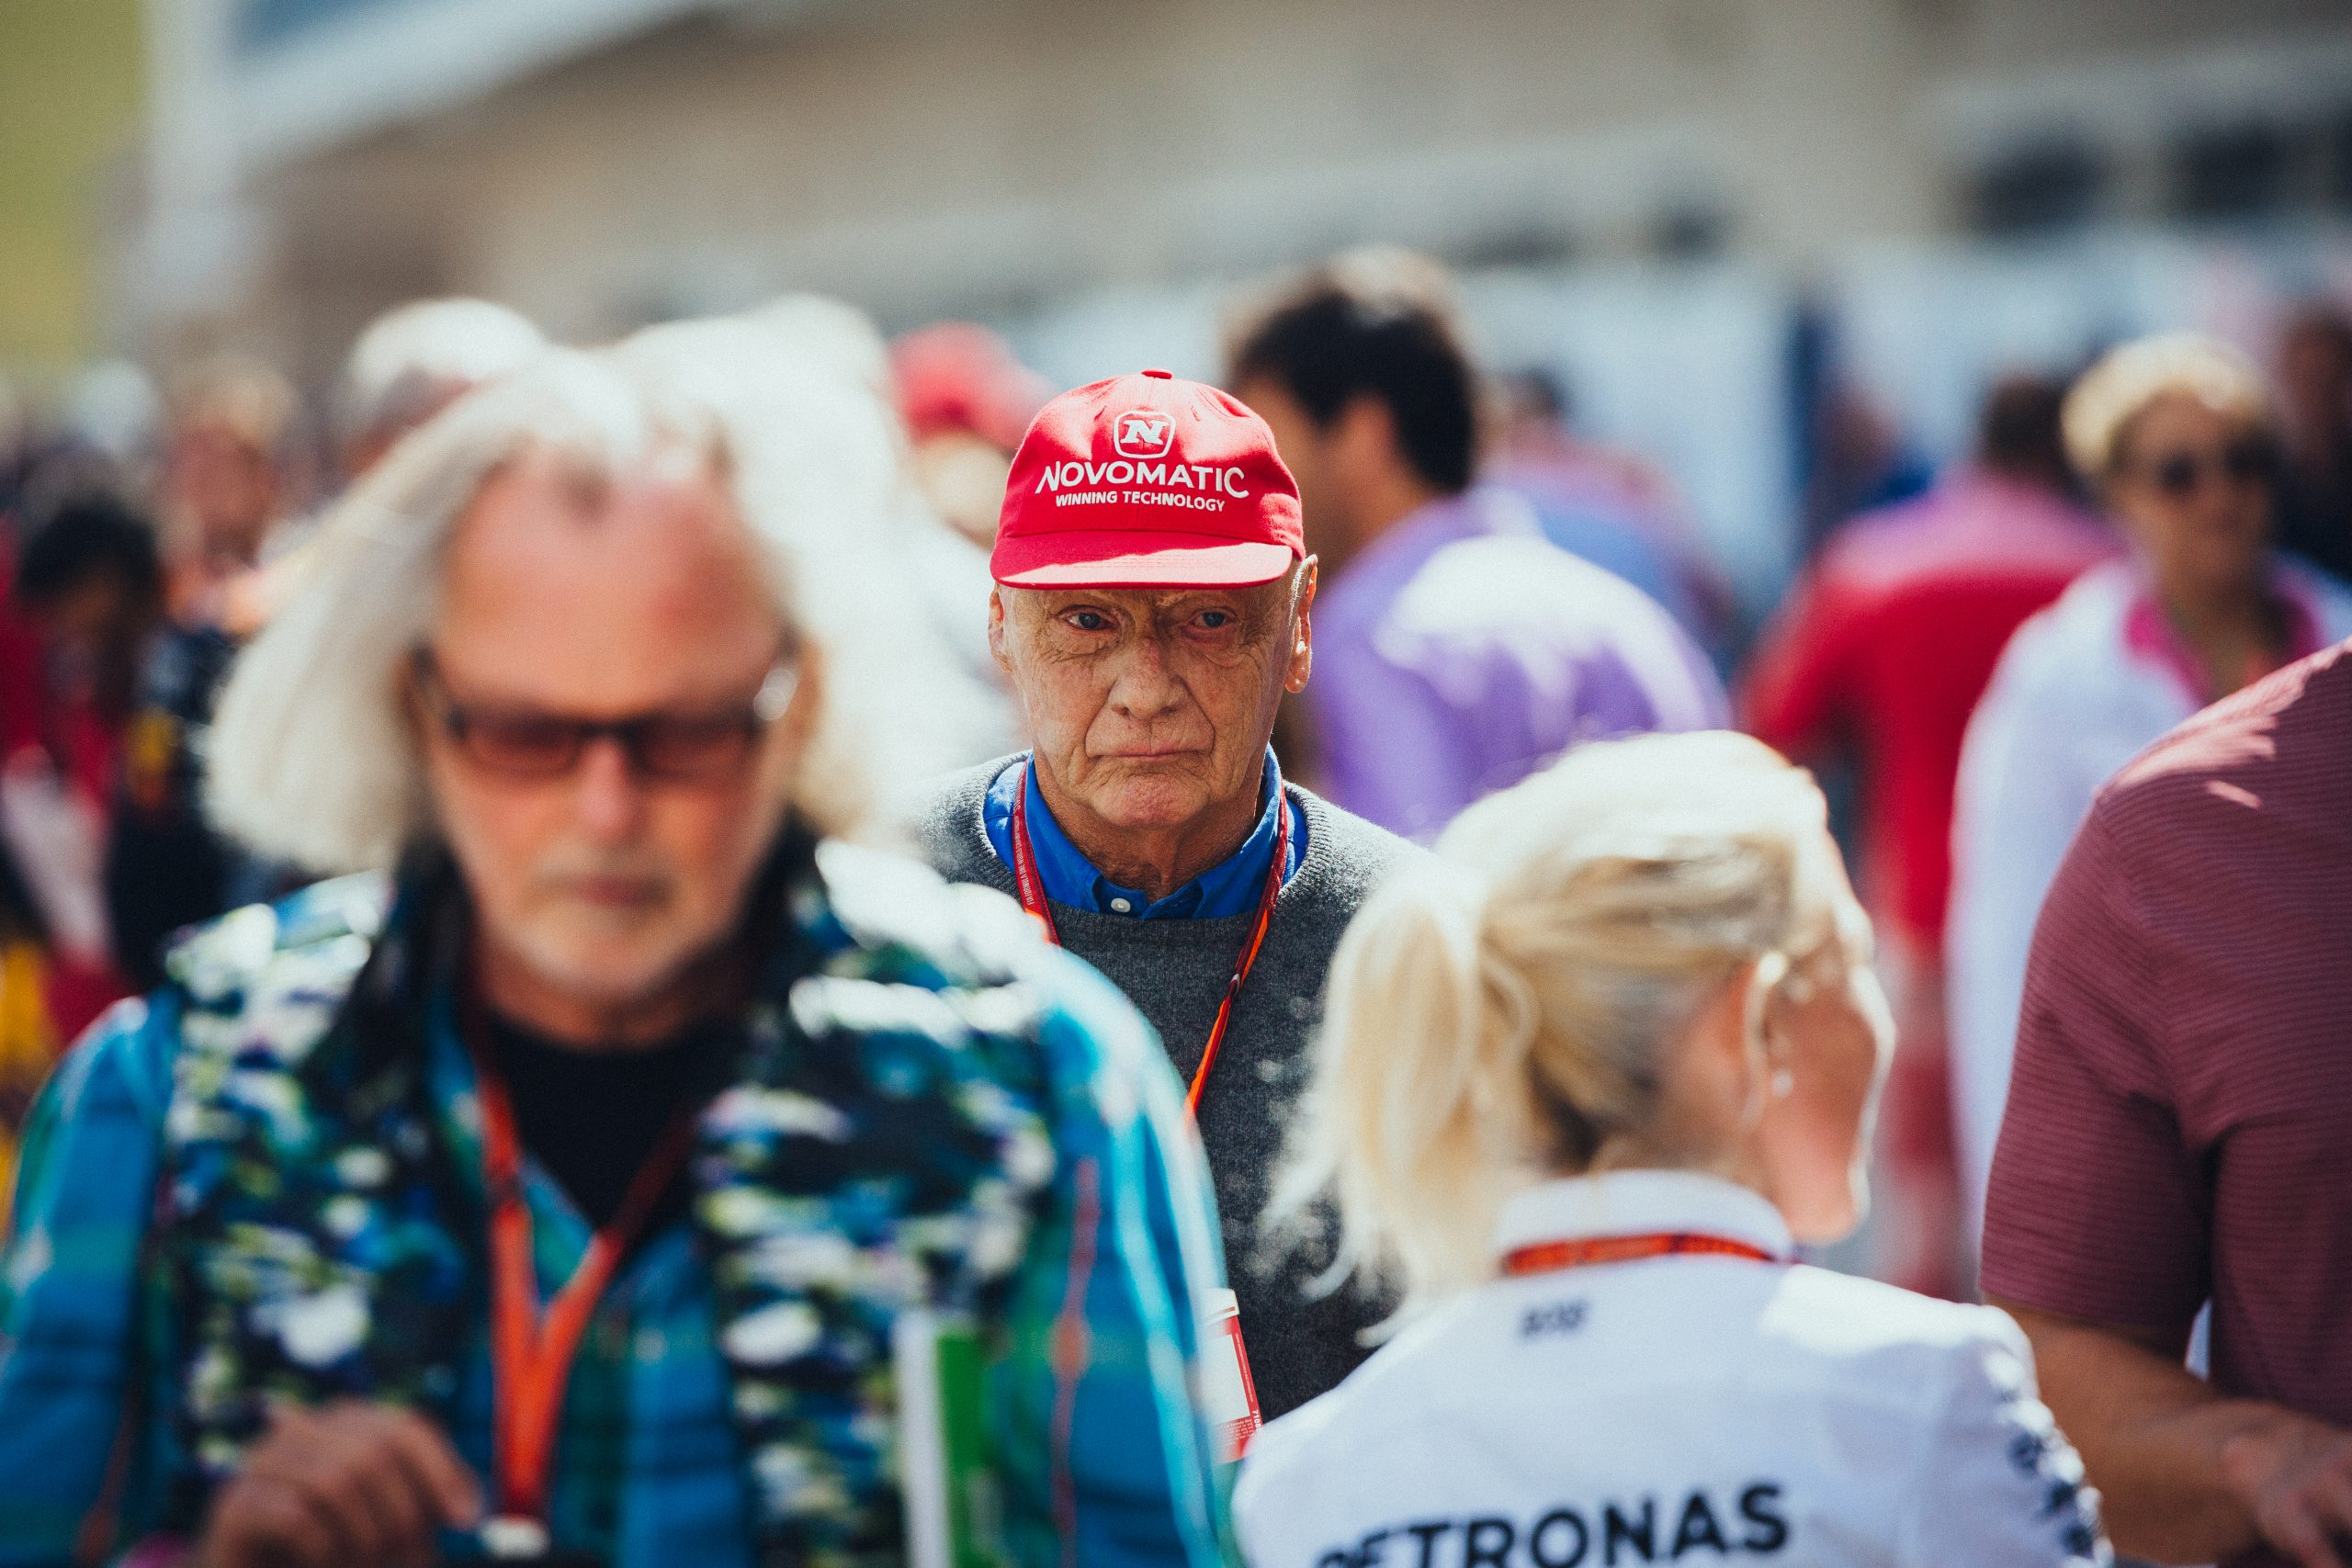 Nikki Lauda at the 2017 Formula 1 United States Grand Prix